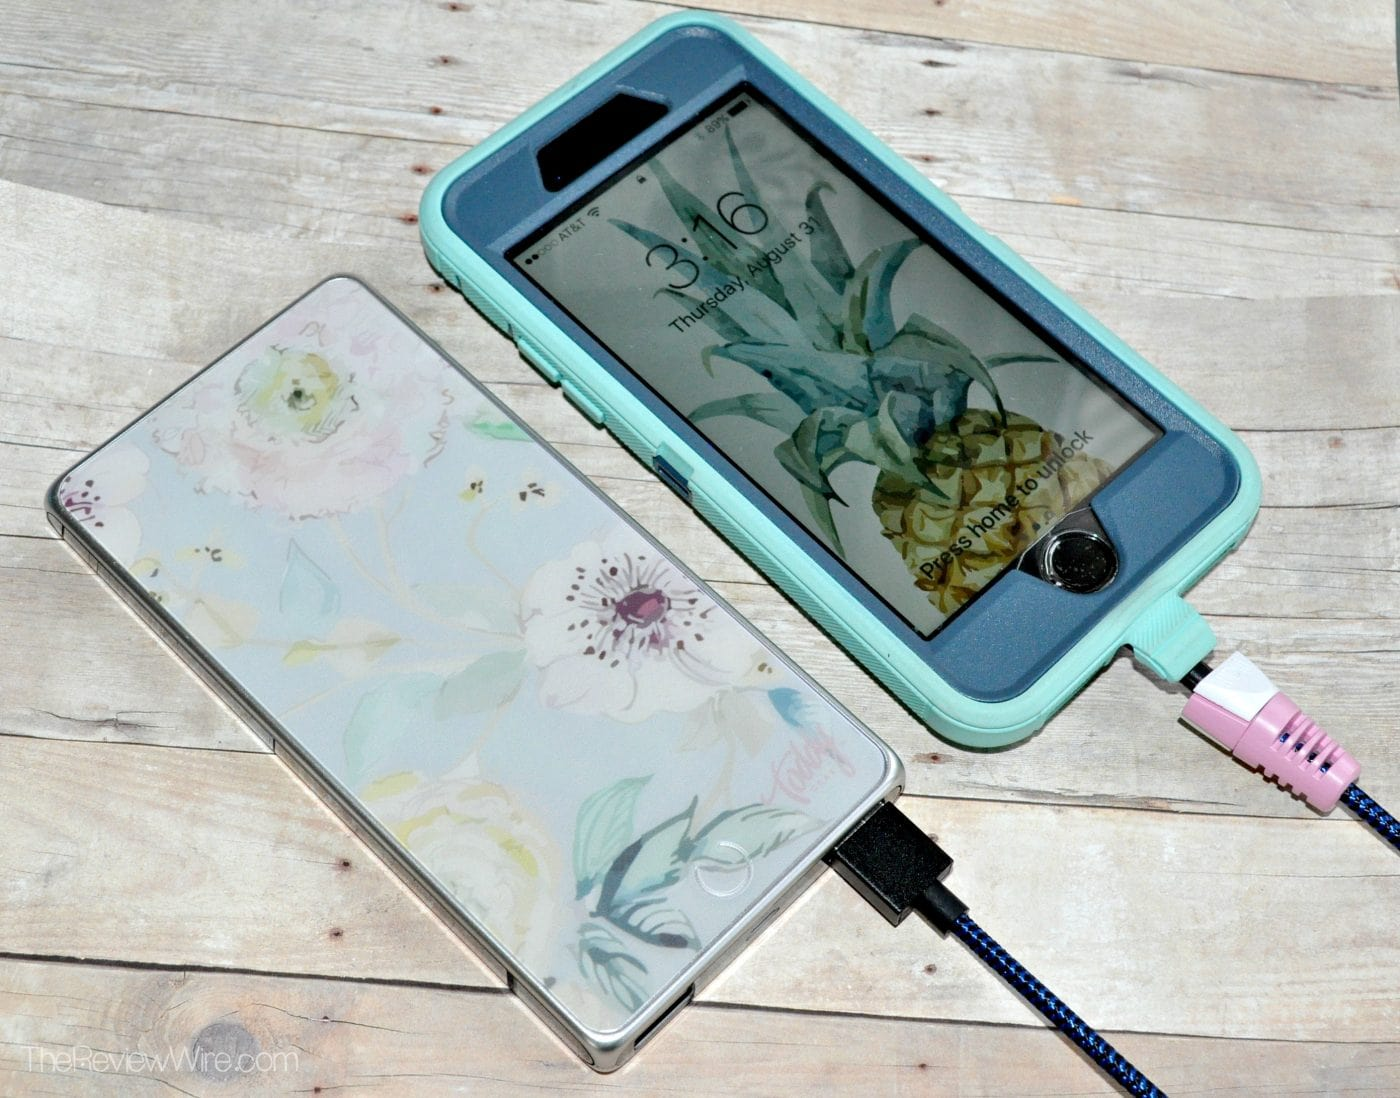 Toddy Gear Smart Charge Power Bank